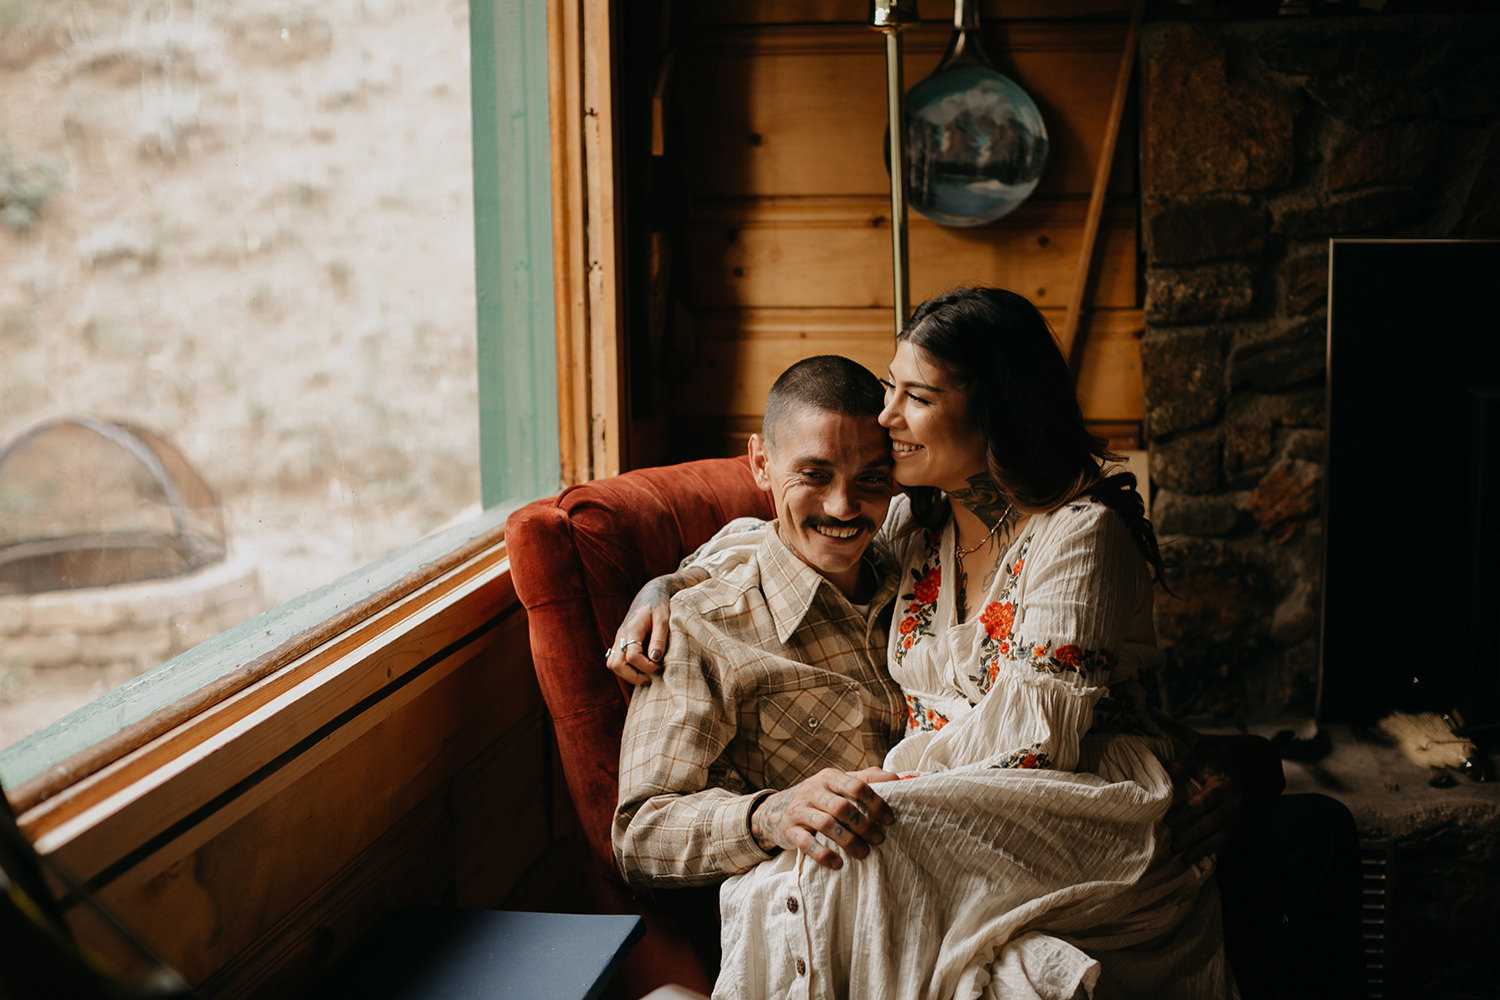 Bailey Colorado Denver Wedding Engagement Photographer Liz Osban Cheyenne Wyoming Mountain Elopement Boho bohemian vintage film tattoo non traditional tattooed rock and roll 43.jpg